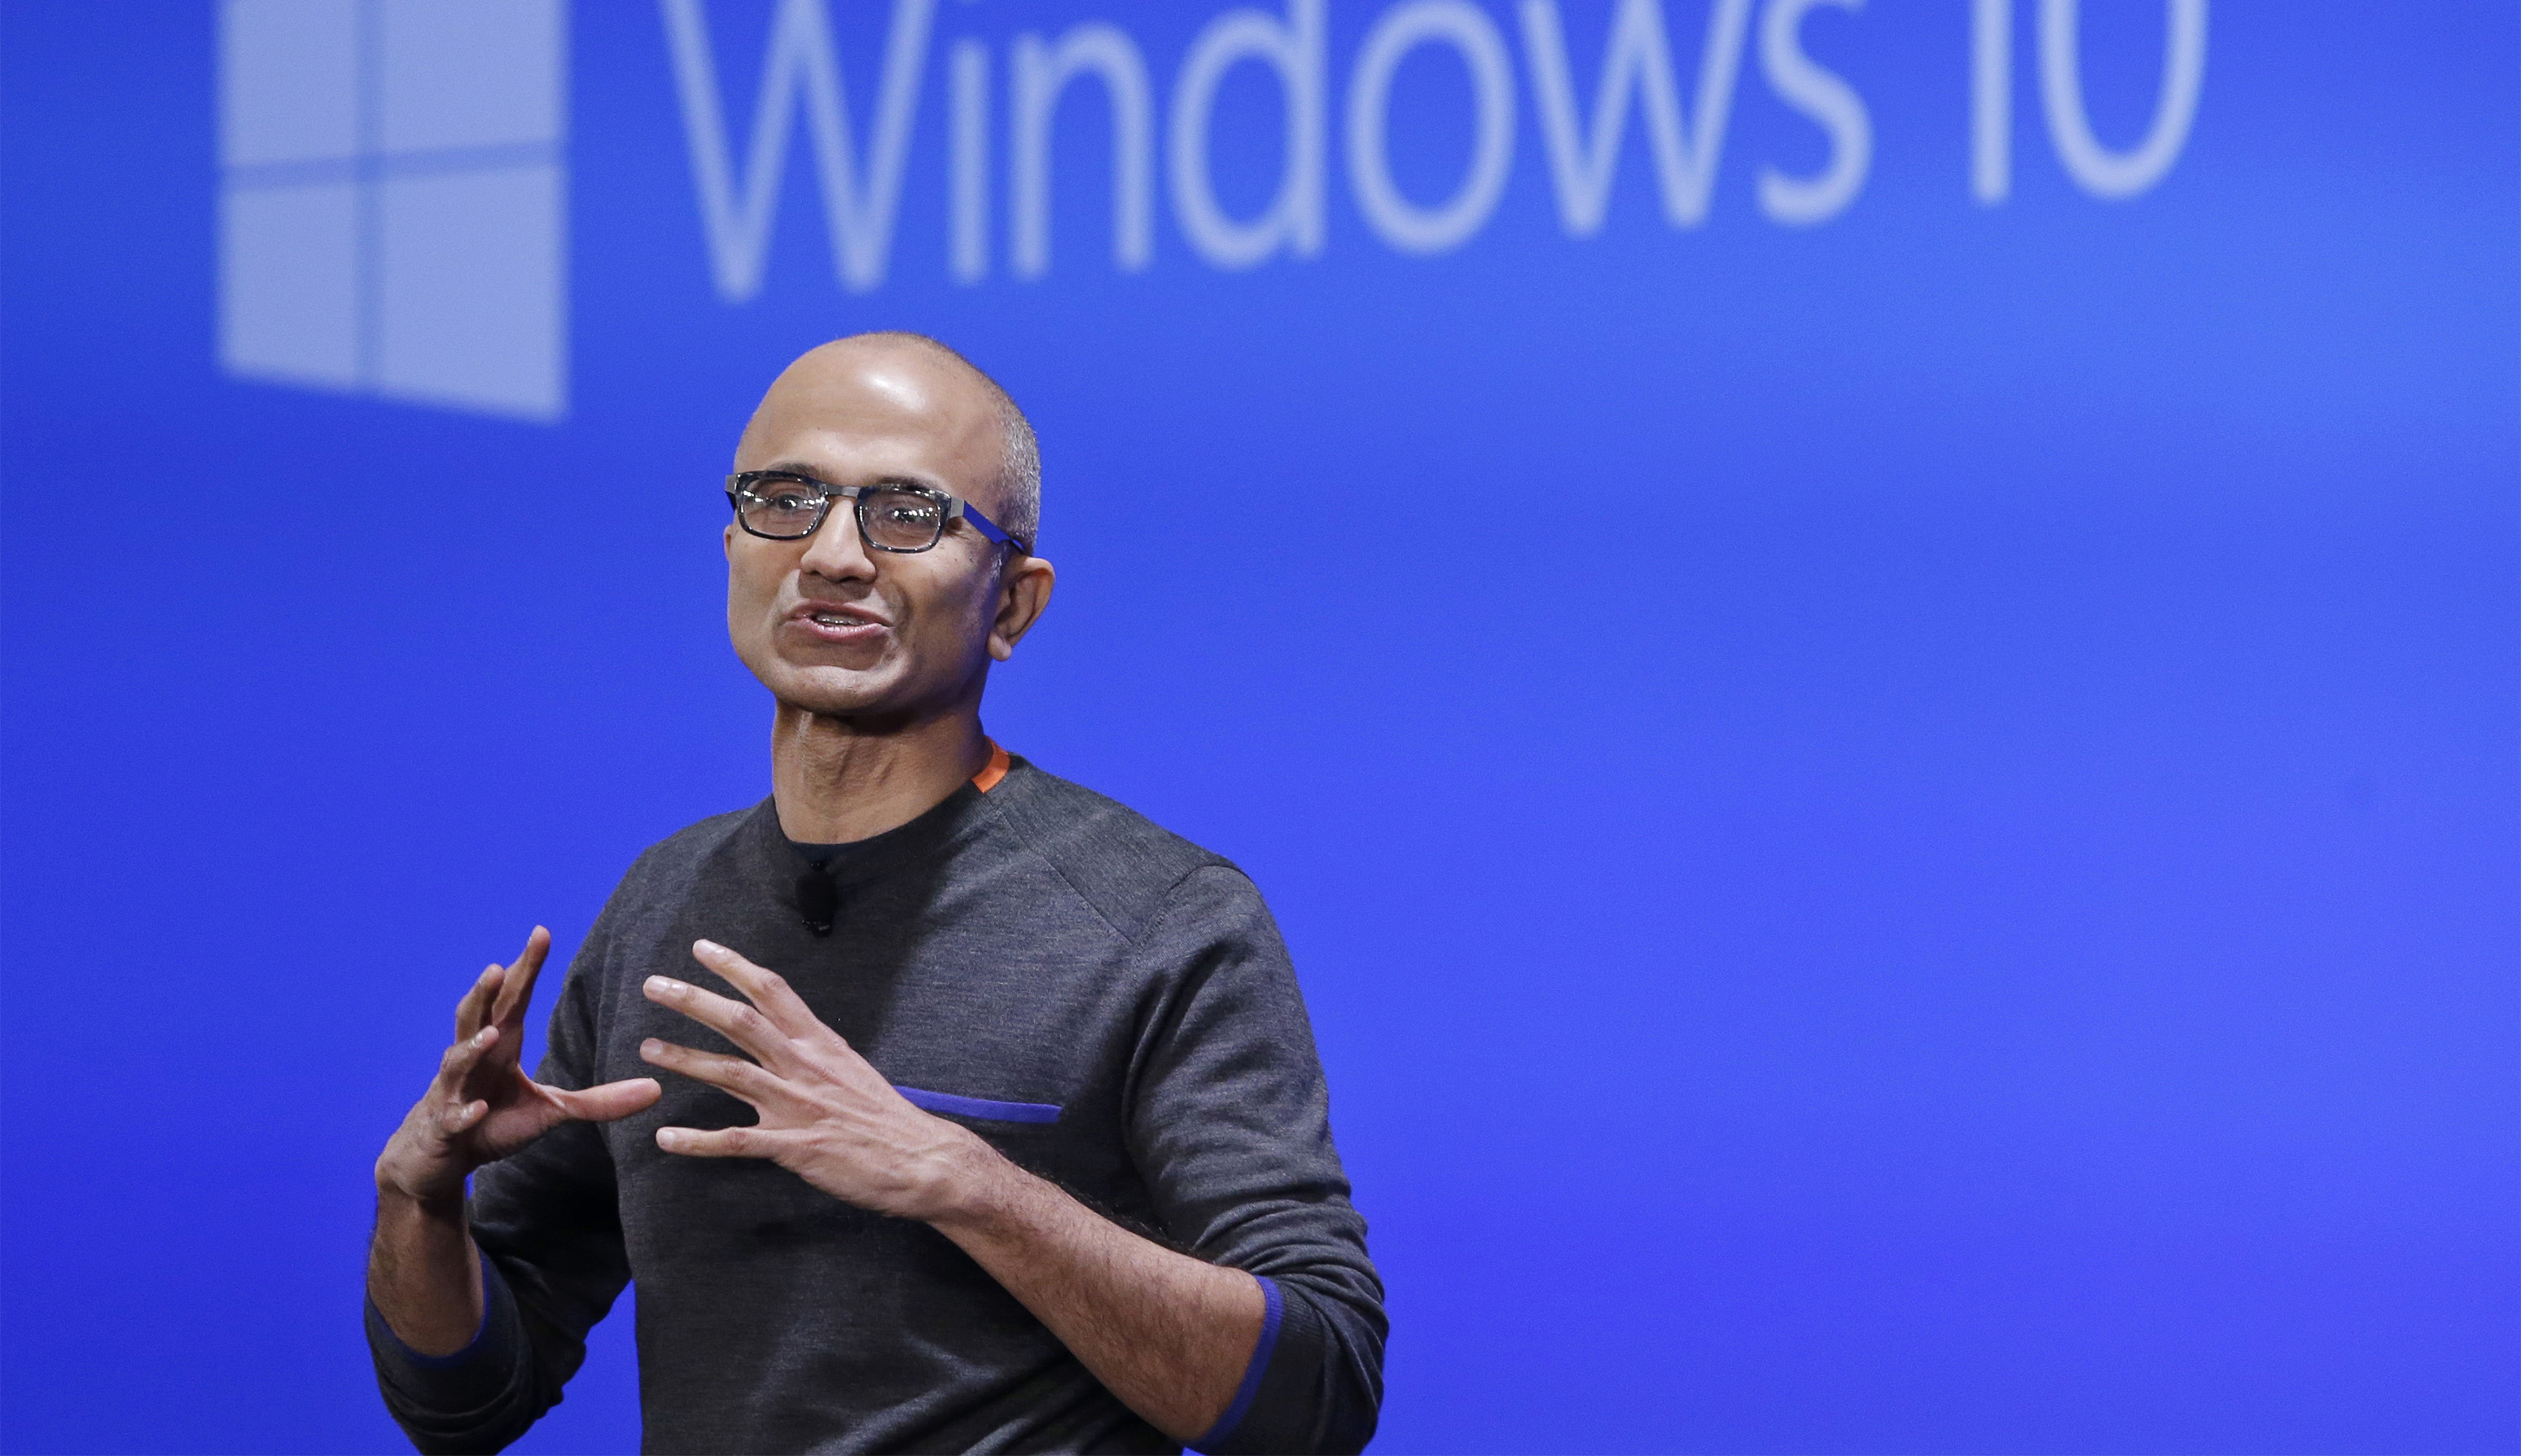 FILE - In this Jan. 21, 2015, file photo, Microsoft CEO Satya Nadella speaks at an event demonstrating the new features of Windows 10 at the company's headquarters in Redmond, Wash. When Chinese President Xi Jinping arrives in Washington state on his way to the other Washington (Washington, D.C.), he'll be visiting the American state that does more business with his country than any other. Washington companies sold China more than $20 billion in products last year, from airplanes to wheat and apples. (AP Photo/Elaine Thompson, File)